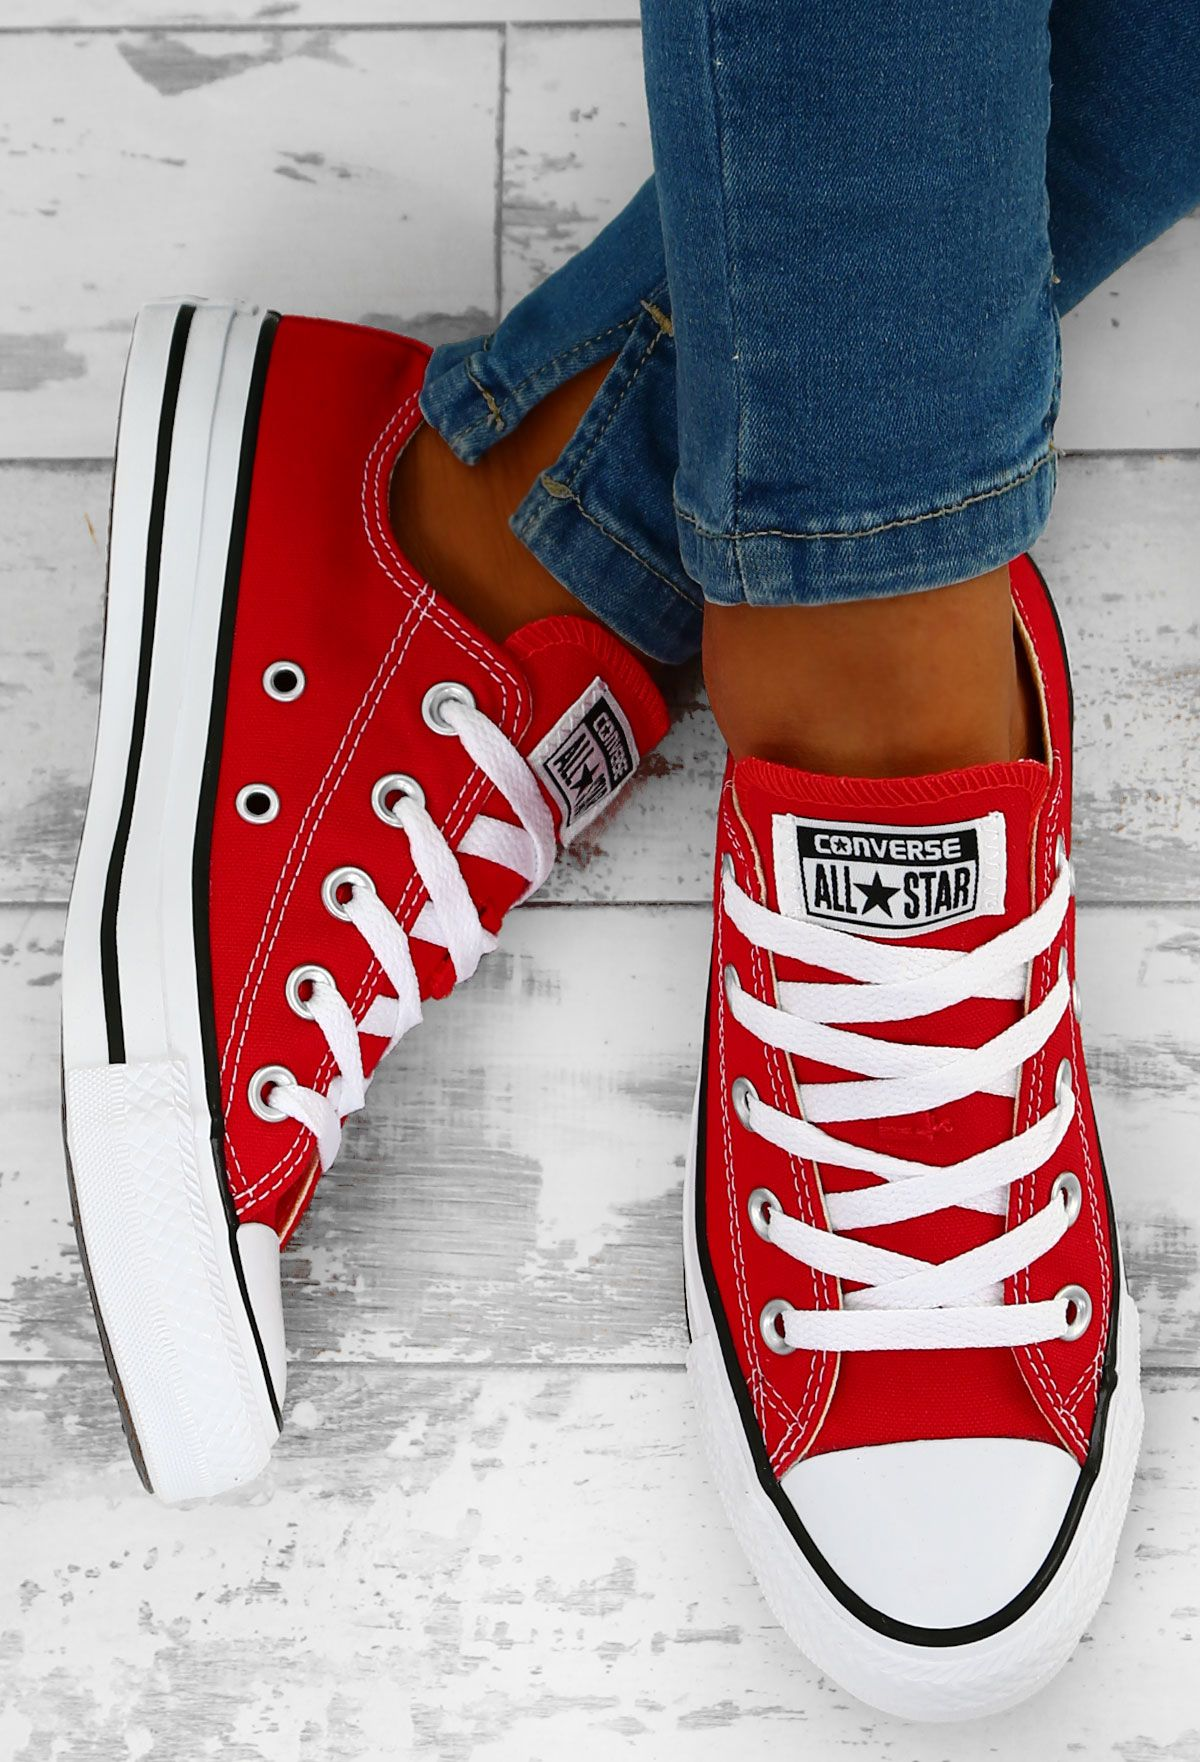 0db1284ed539 These red Converse All Star trainers feature a white rubber sole